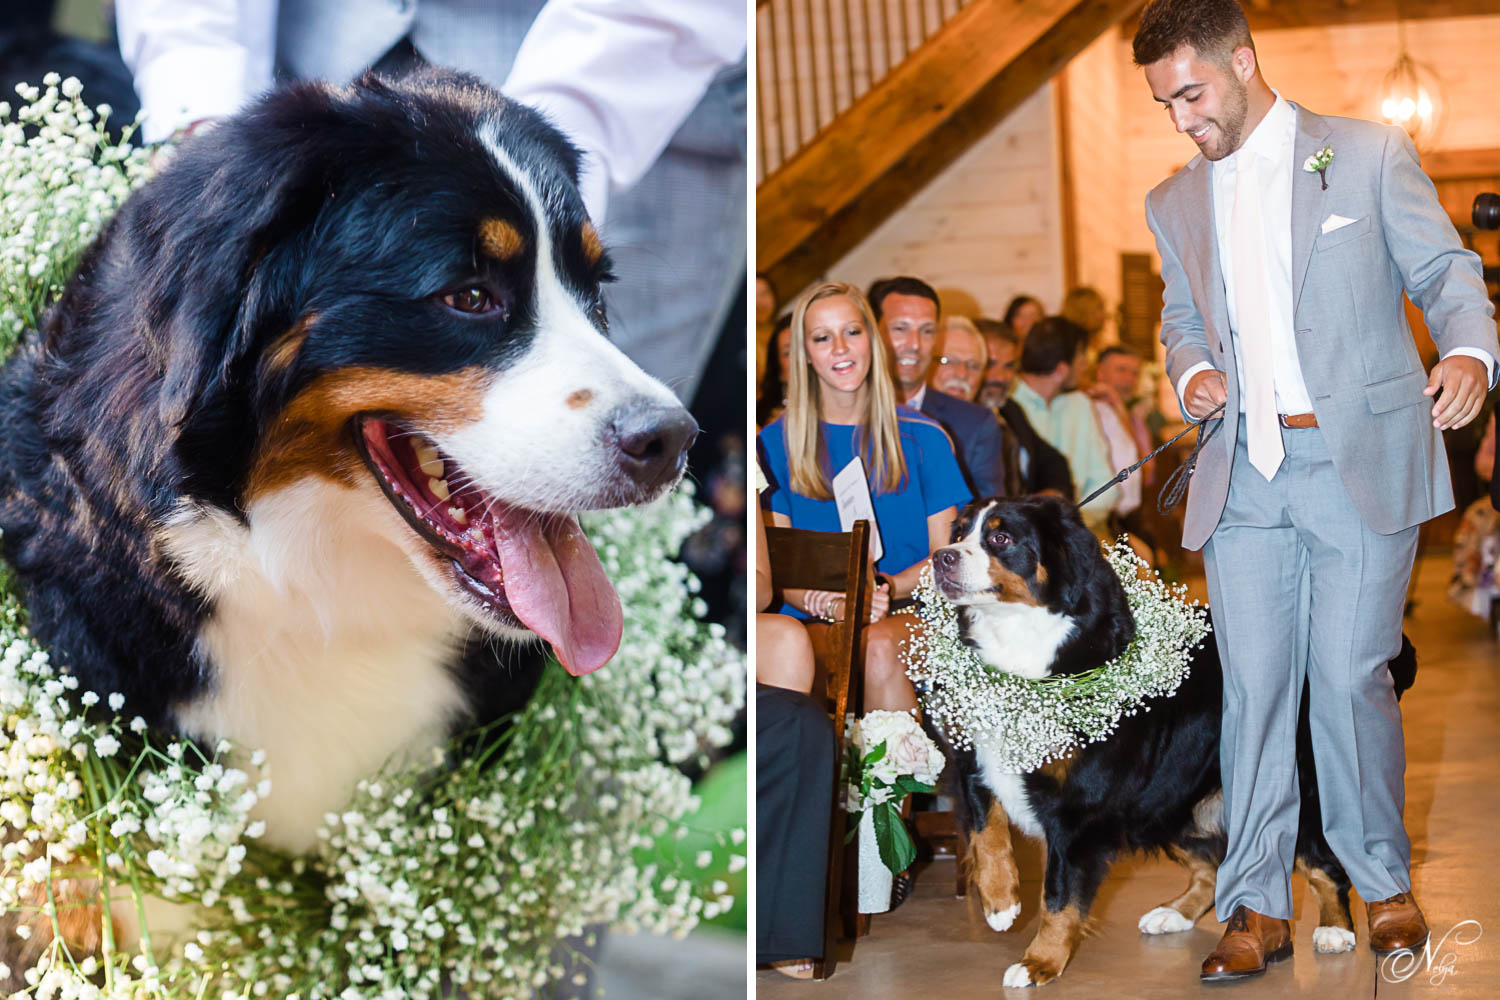 Raven the Bernese Mountain dog as the dog of honor being walked into the wedding.